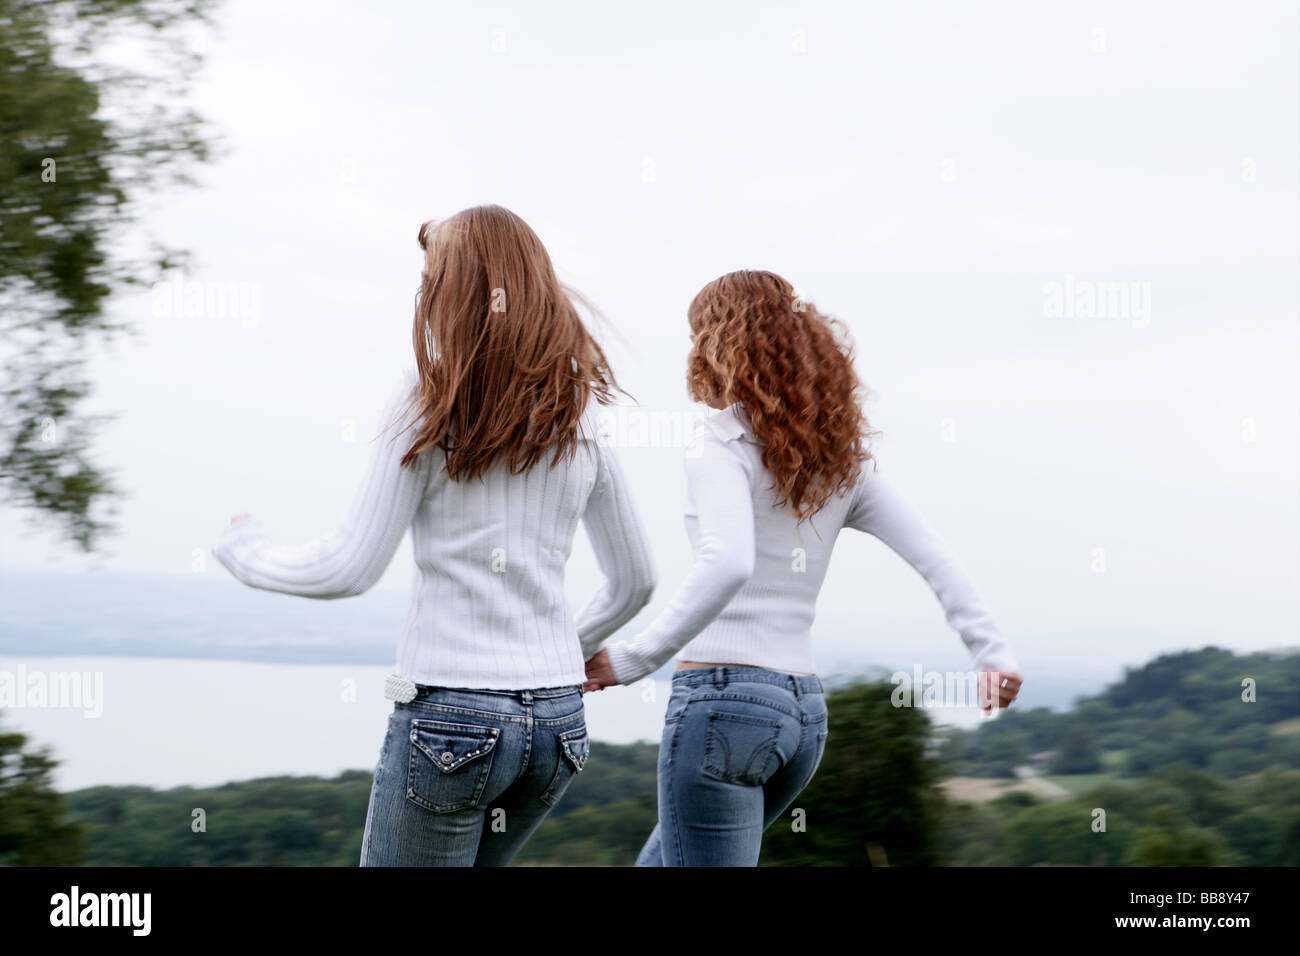 Two teenagers walking on a field with lake view Stock Photo